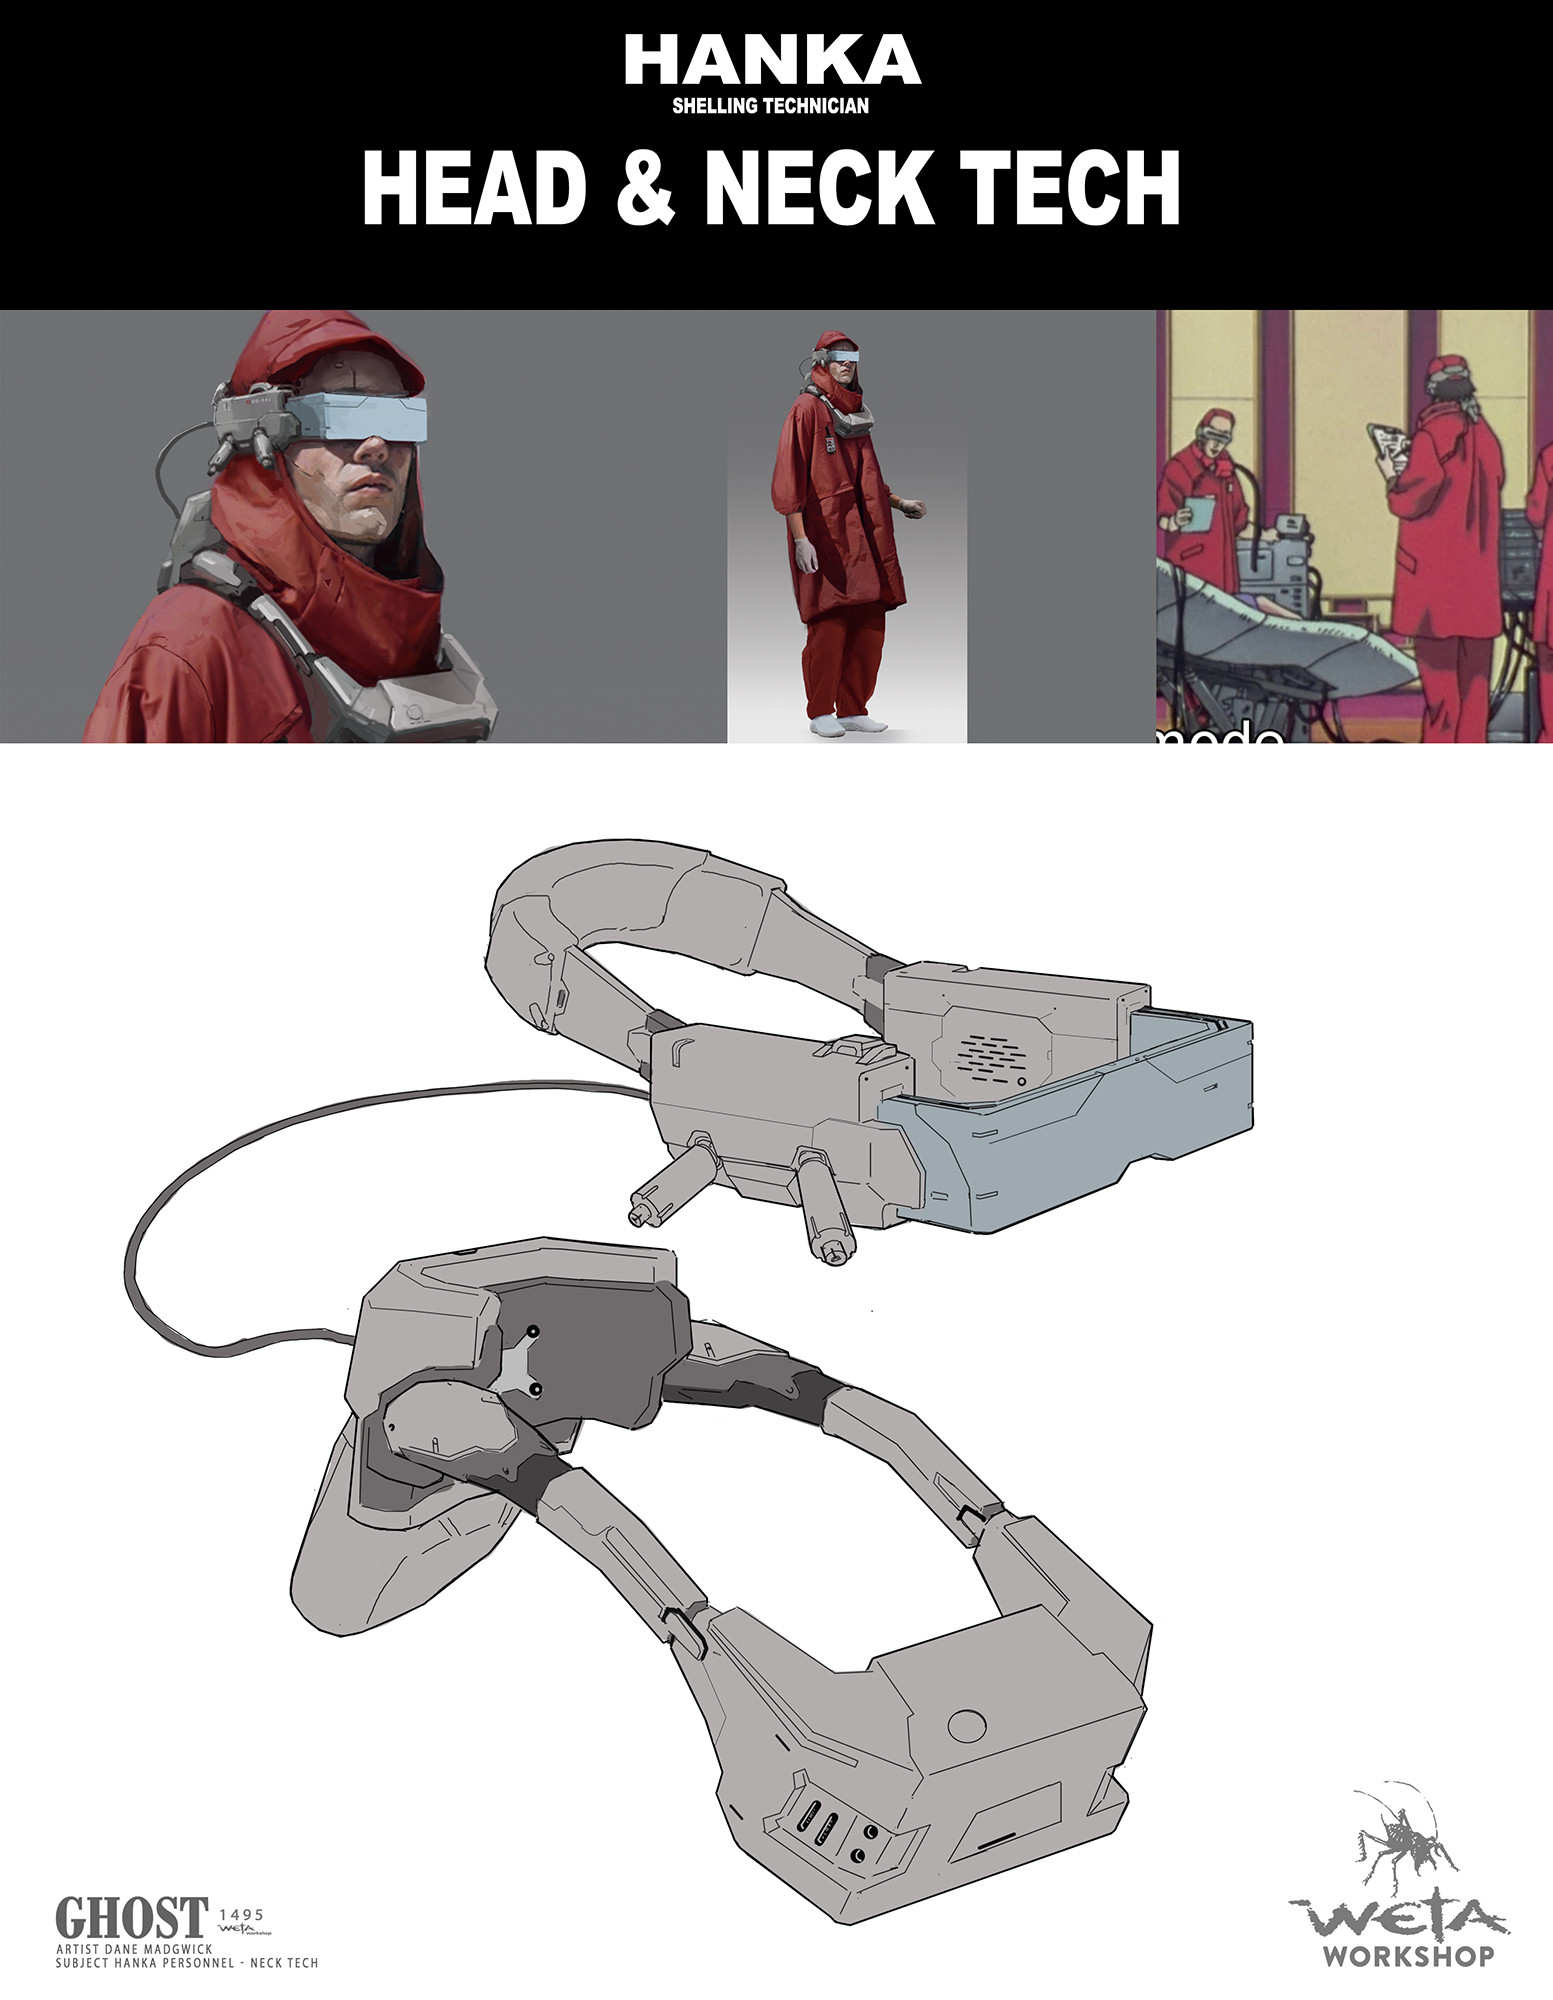 Weta workshop design studio charschem shelling technician tech dm